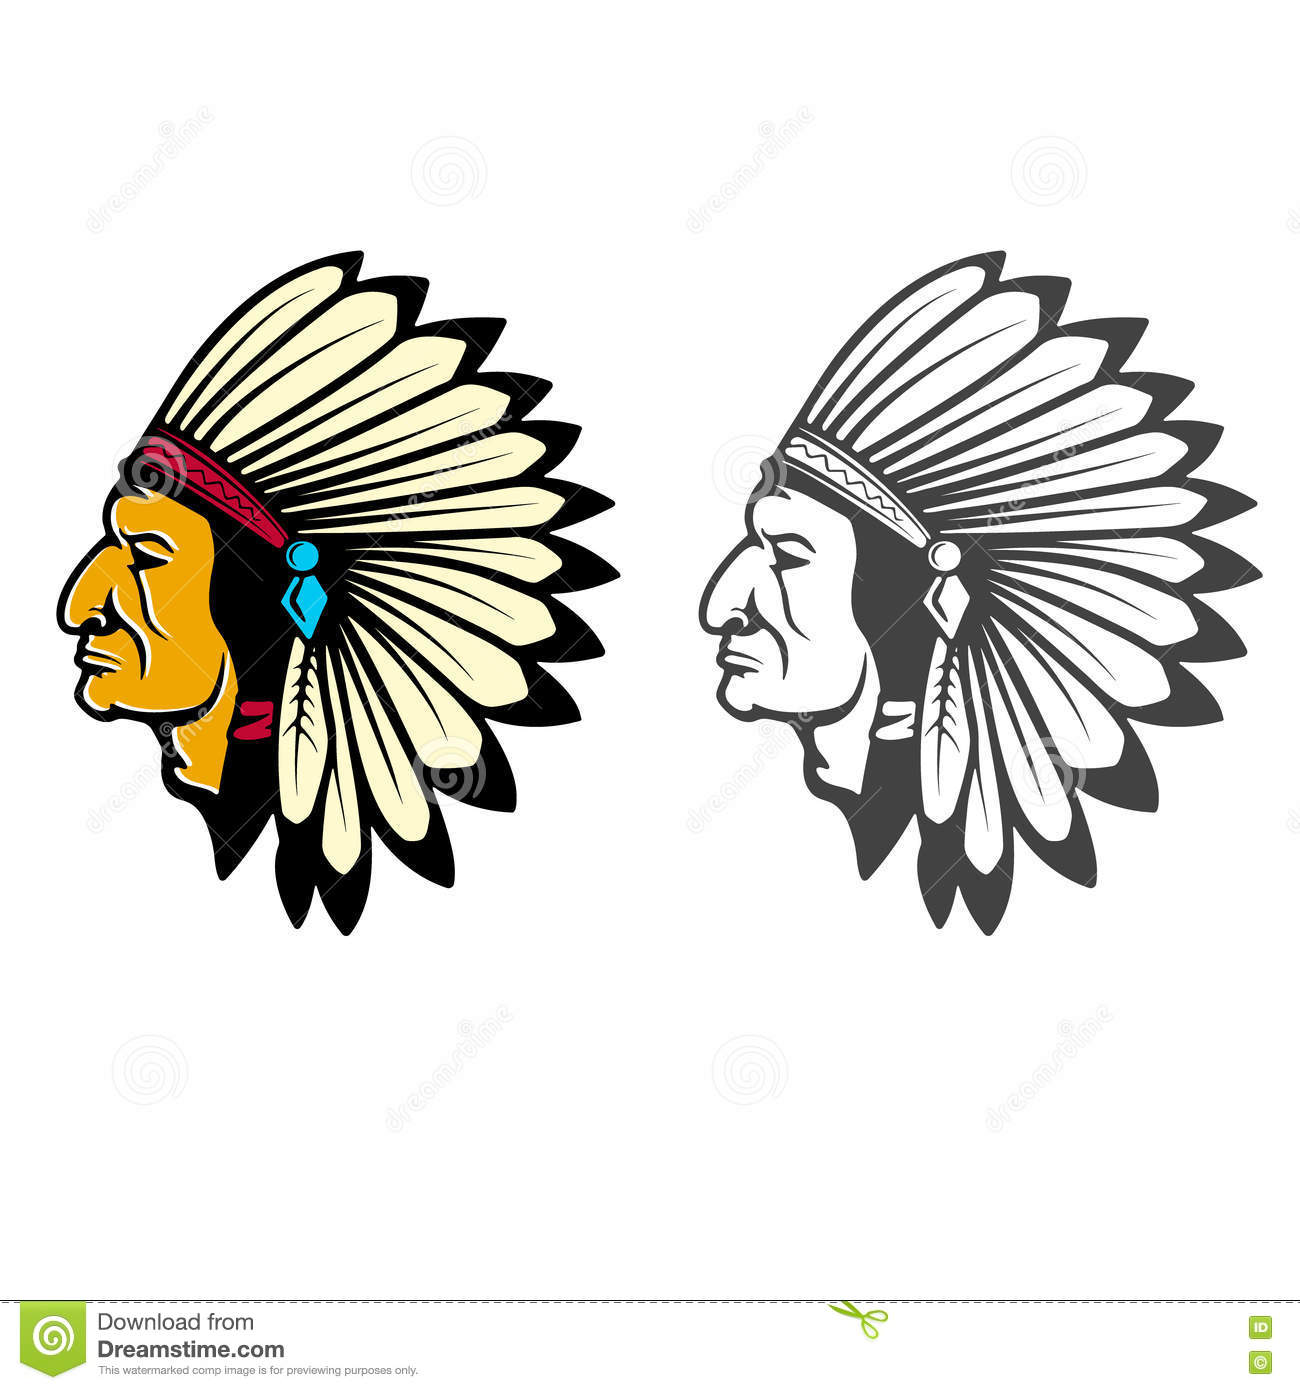 Indian Head Concept Stock Vector Illustration Of Concept 77231402